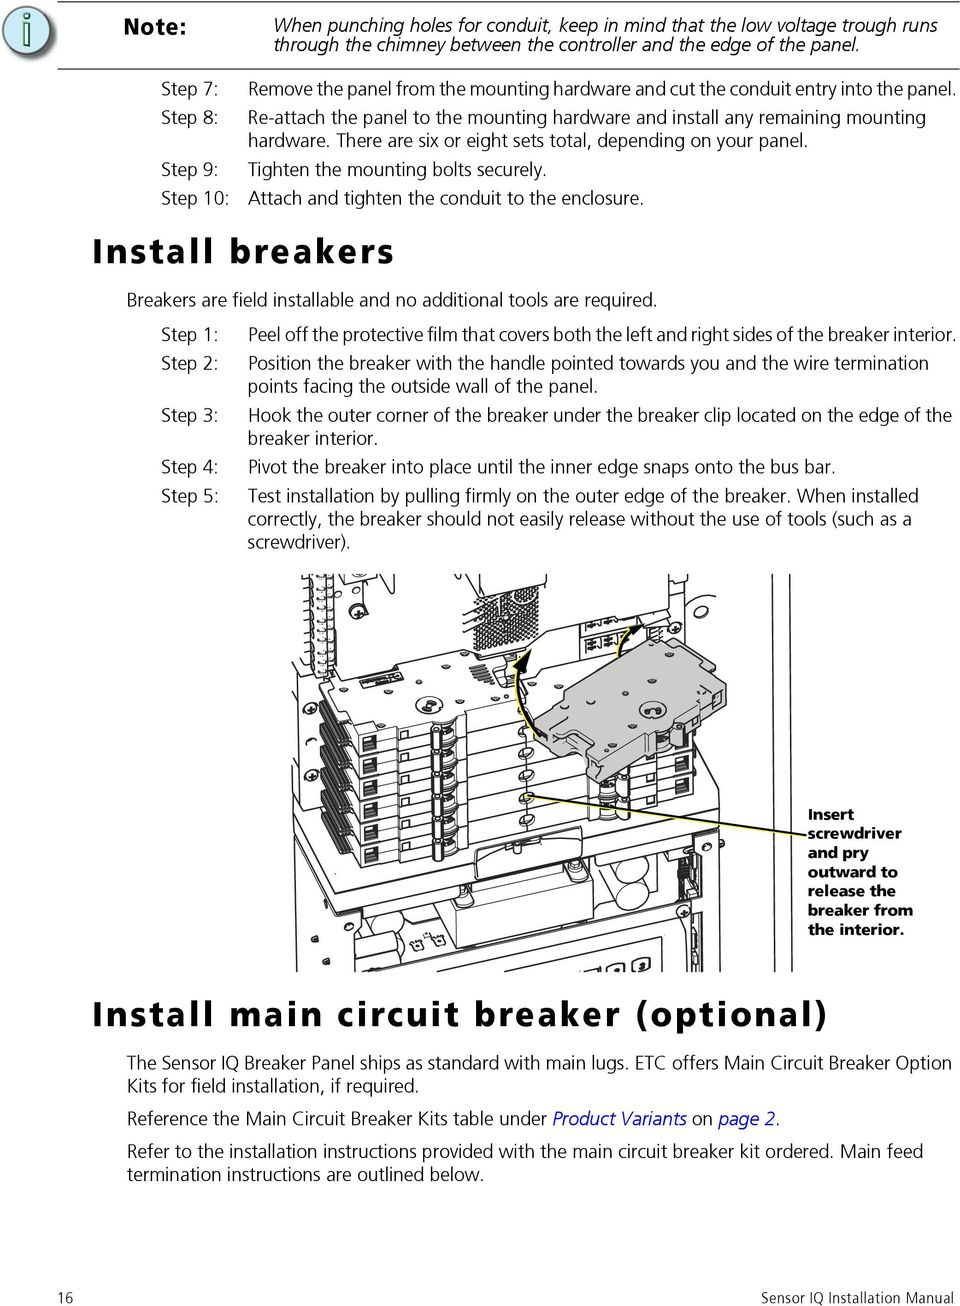 Sensor Iq Intelligent Breaker Panel Pdf Main Circuit Wiring There Are Six Or Eight Sets Total Depending On Your Tighten The Mounting